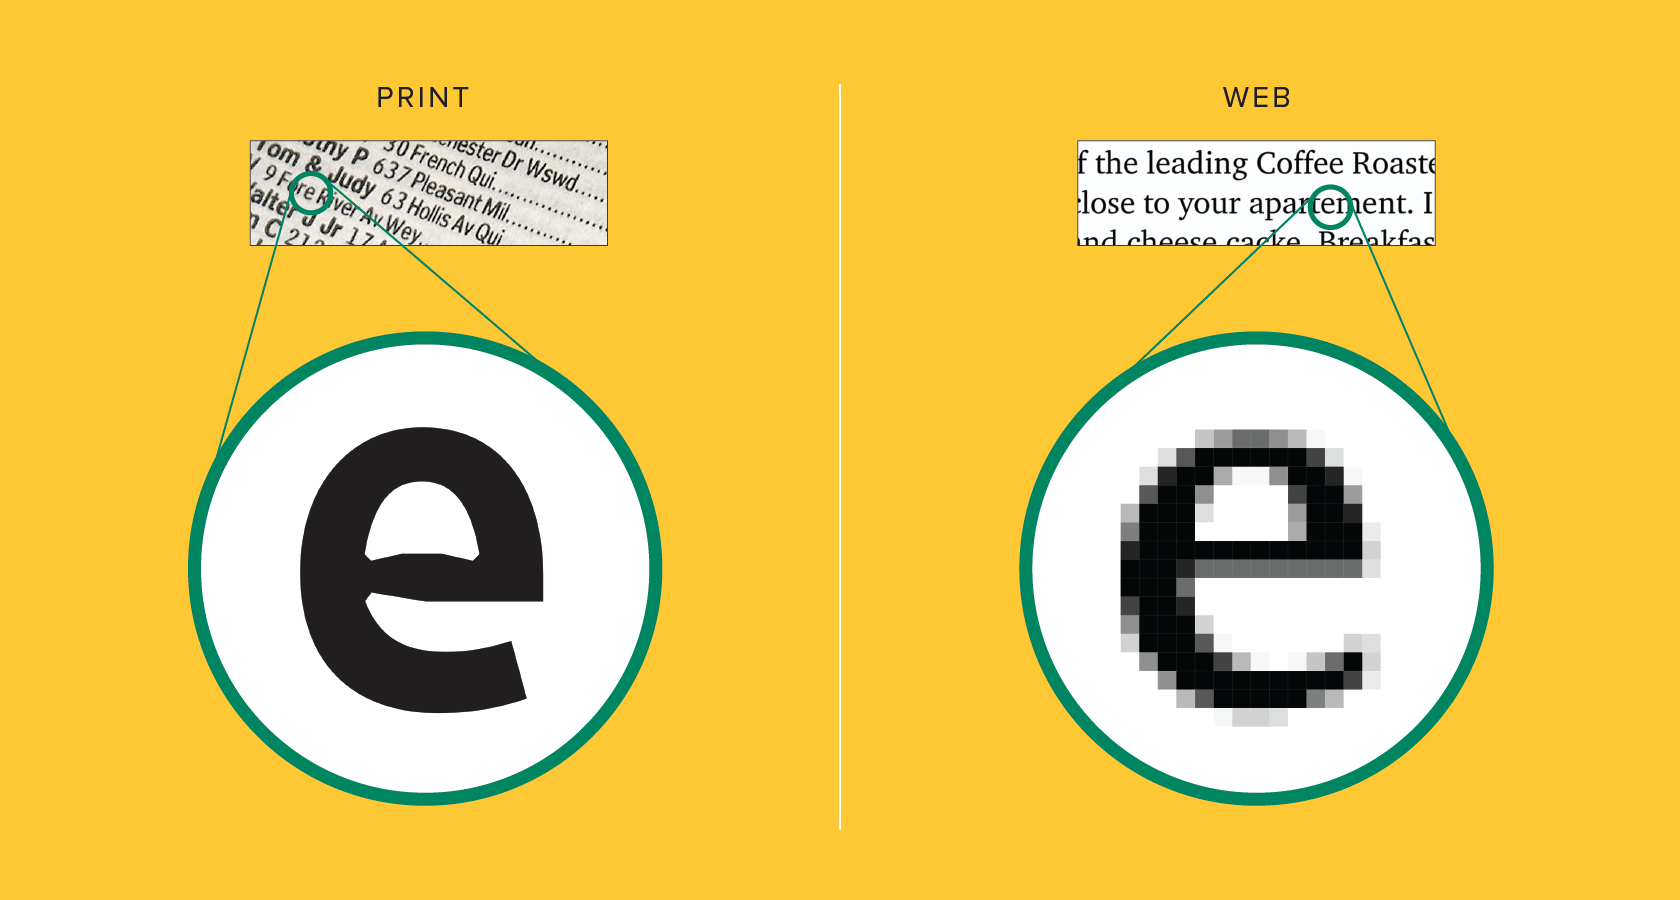 Print design fonts vs web design fonts